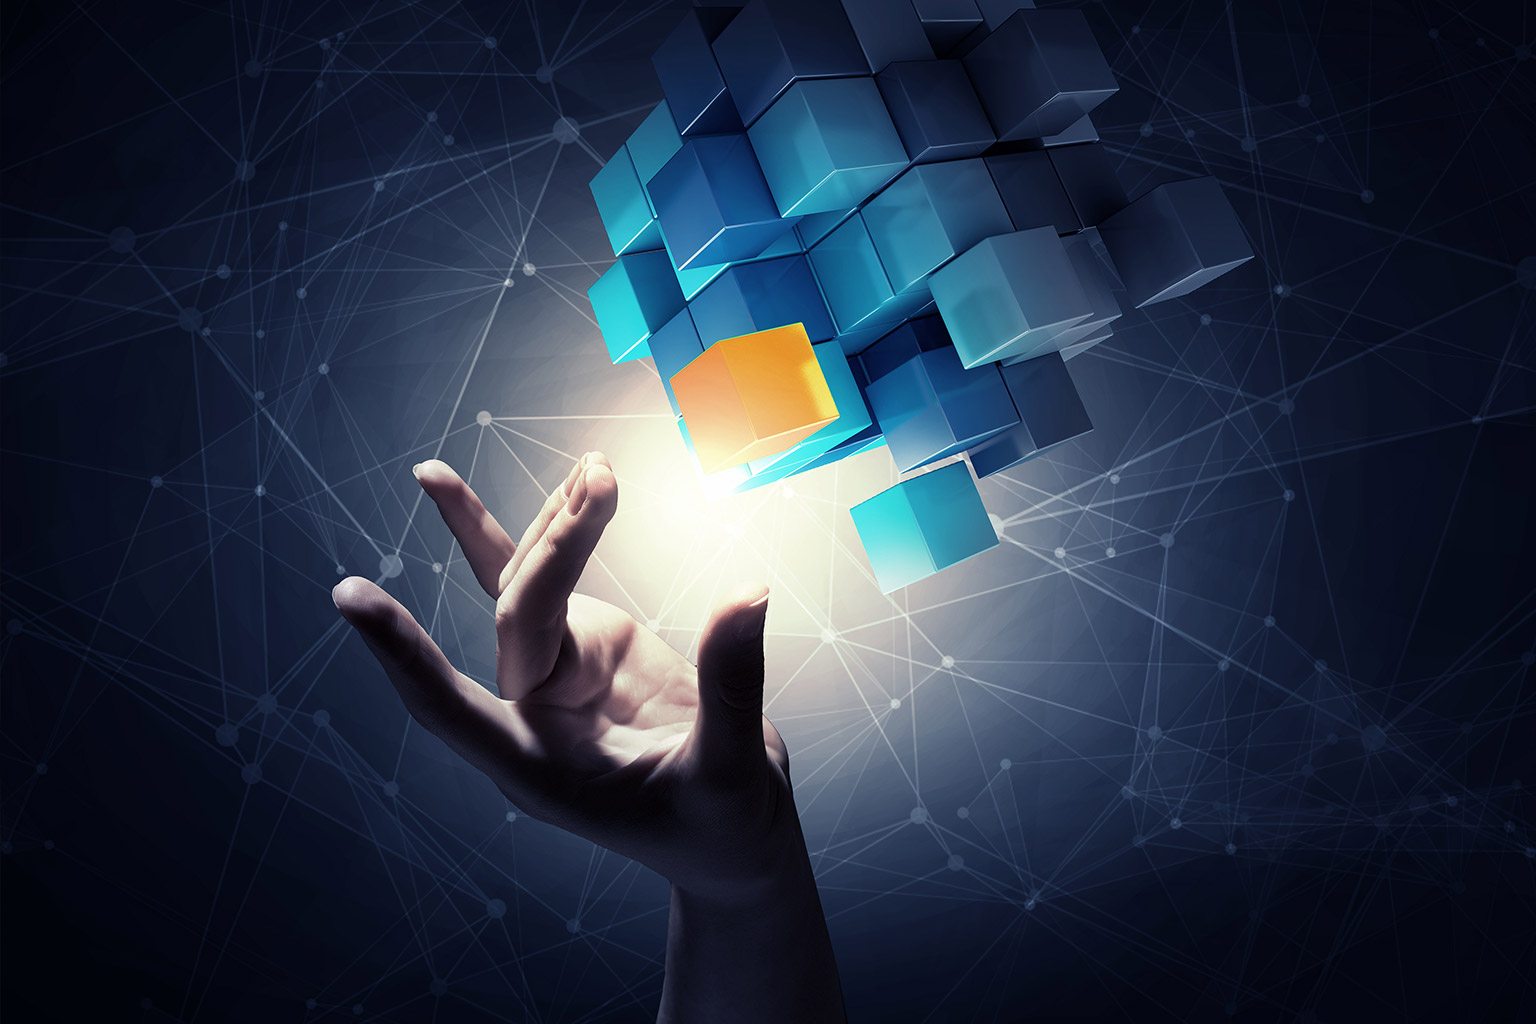 Bitcoin SV Experiences Blockchain Reorganizations, Possibly Due to Unwieldy Block Size